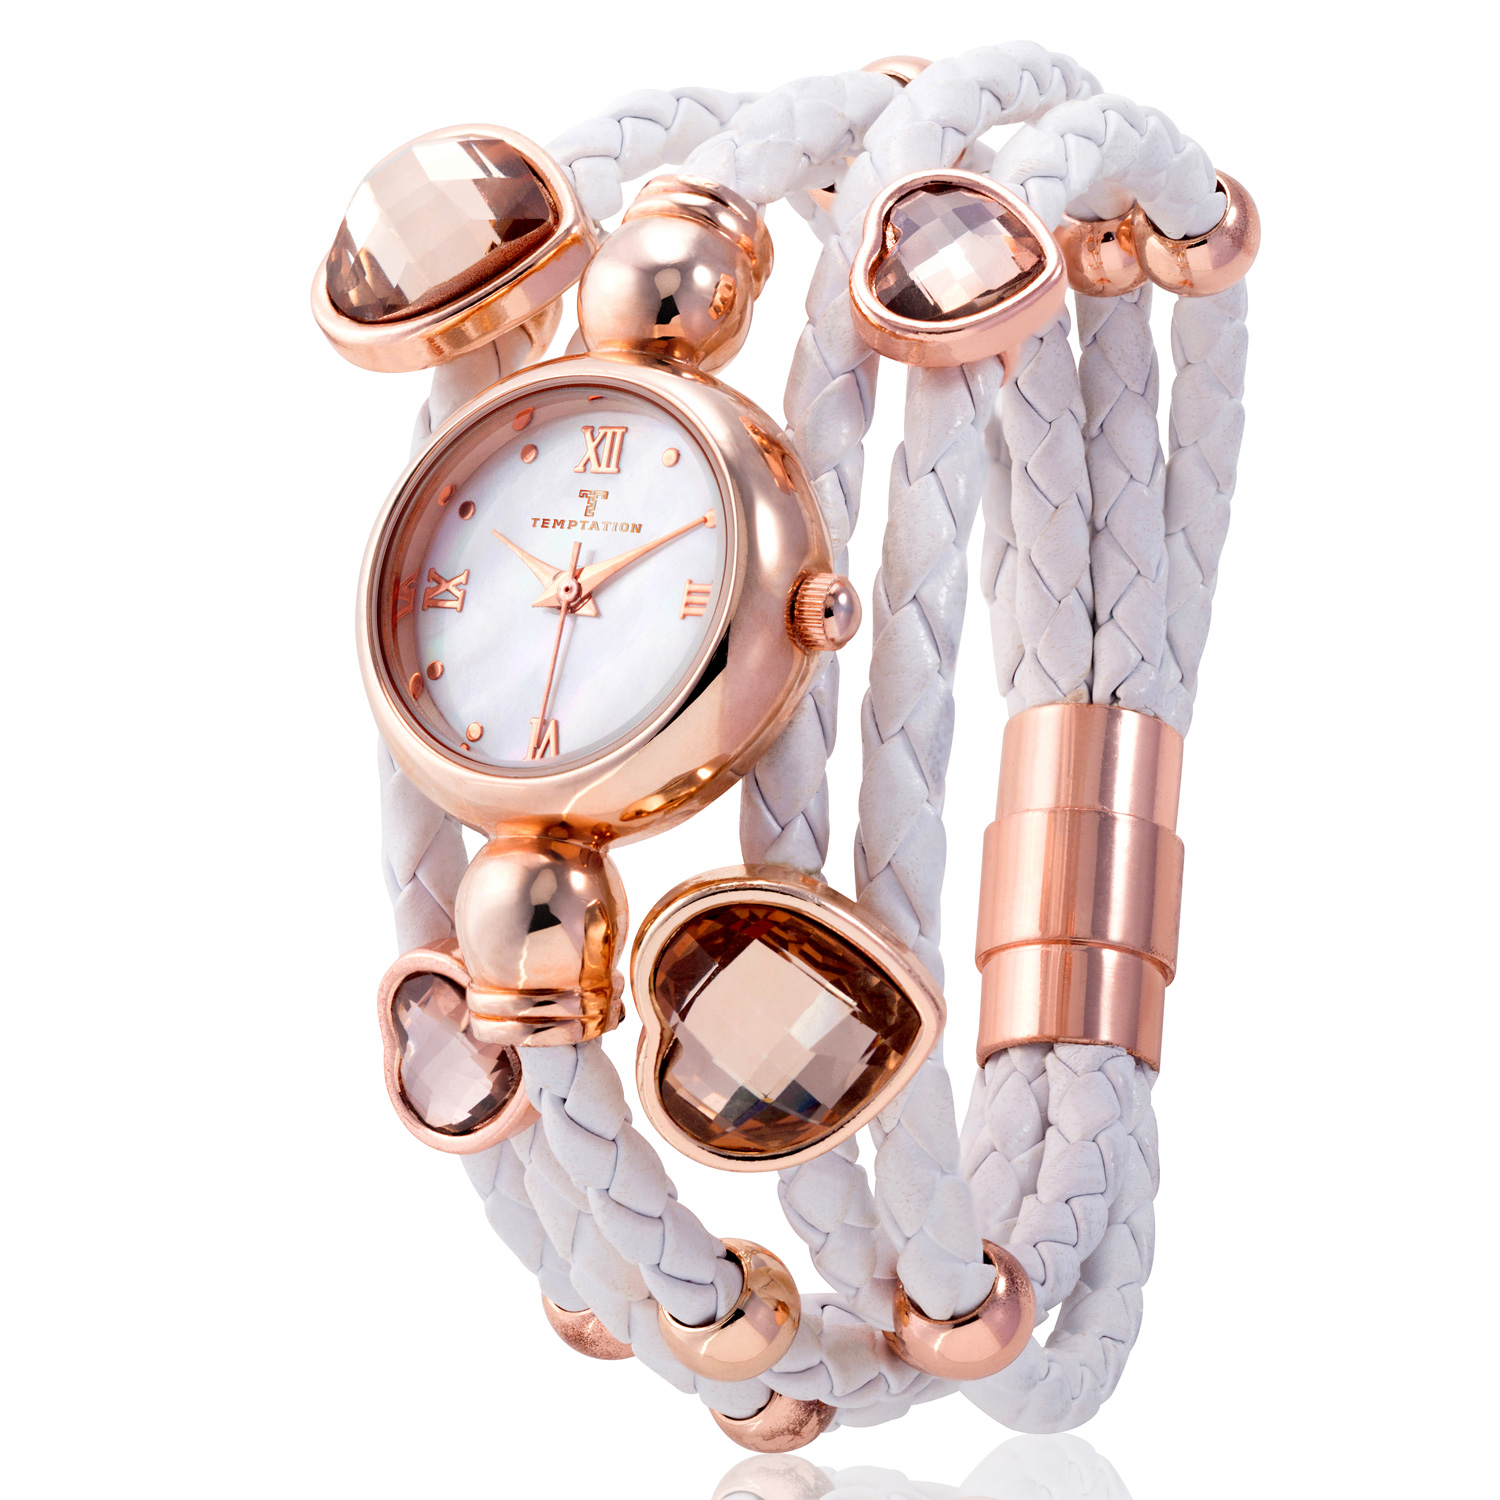 Temptation Watch TEA-2015-03 Rose Gold